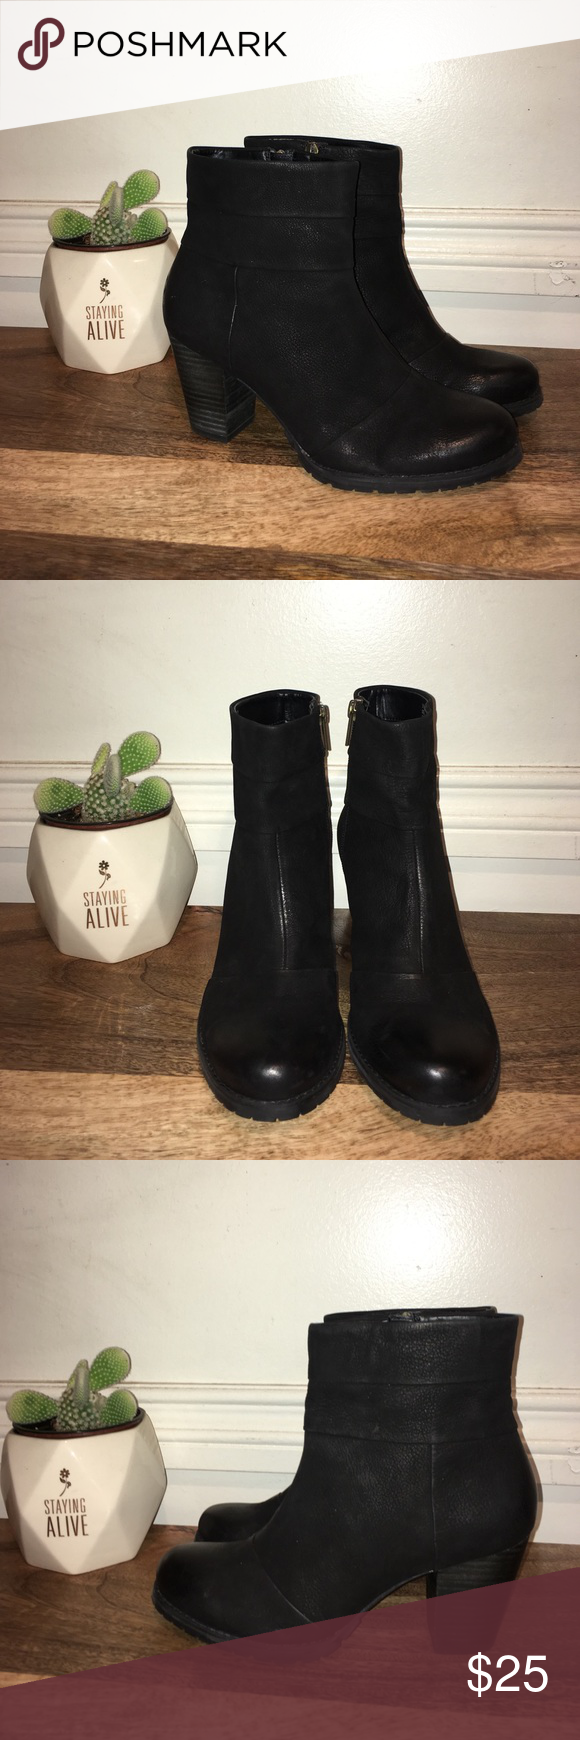 Clarks Booties 🌵 Black Distressed Leather Botties gently worn, with scuffs and marks from normal wear, however no stains or holes, lots of life left 🌸 Clarks Shoes